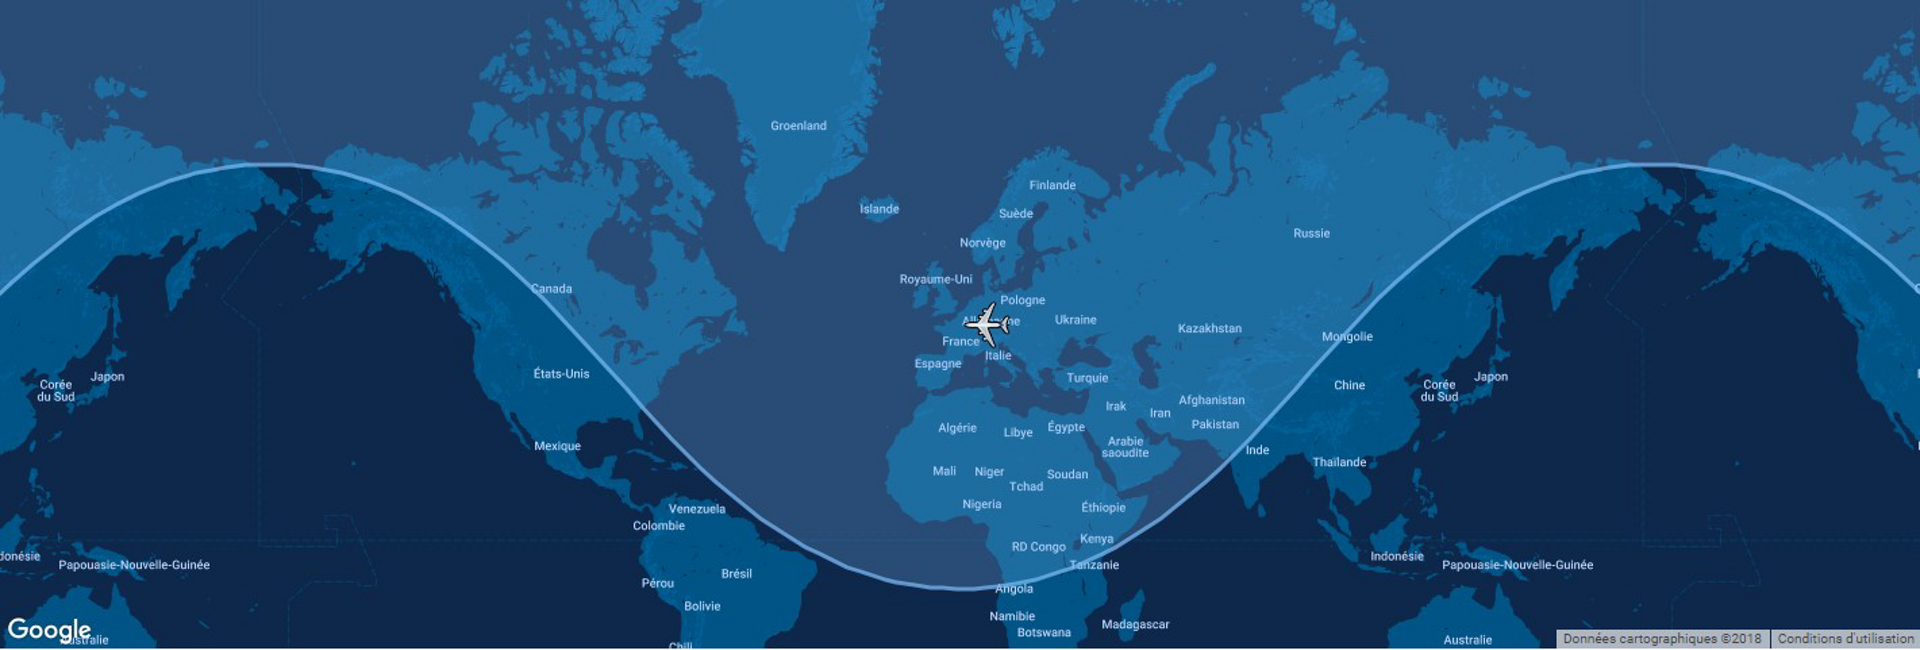 The typical range for Airbus' A319neo commercial aircraft is shown in this diagram, which includes a global map.